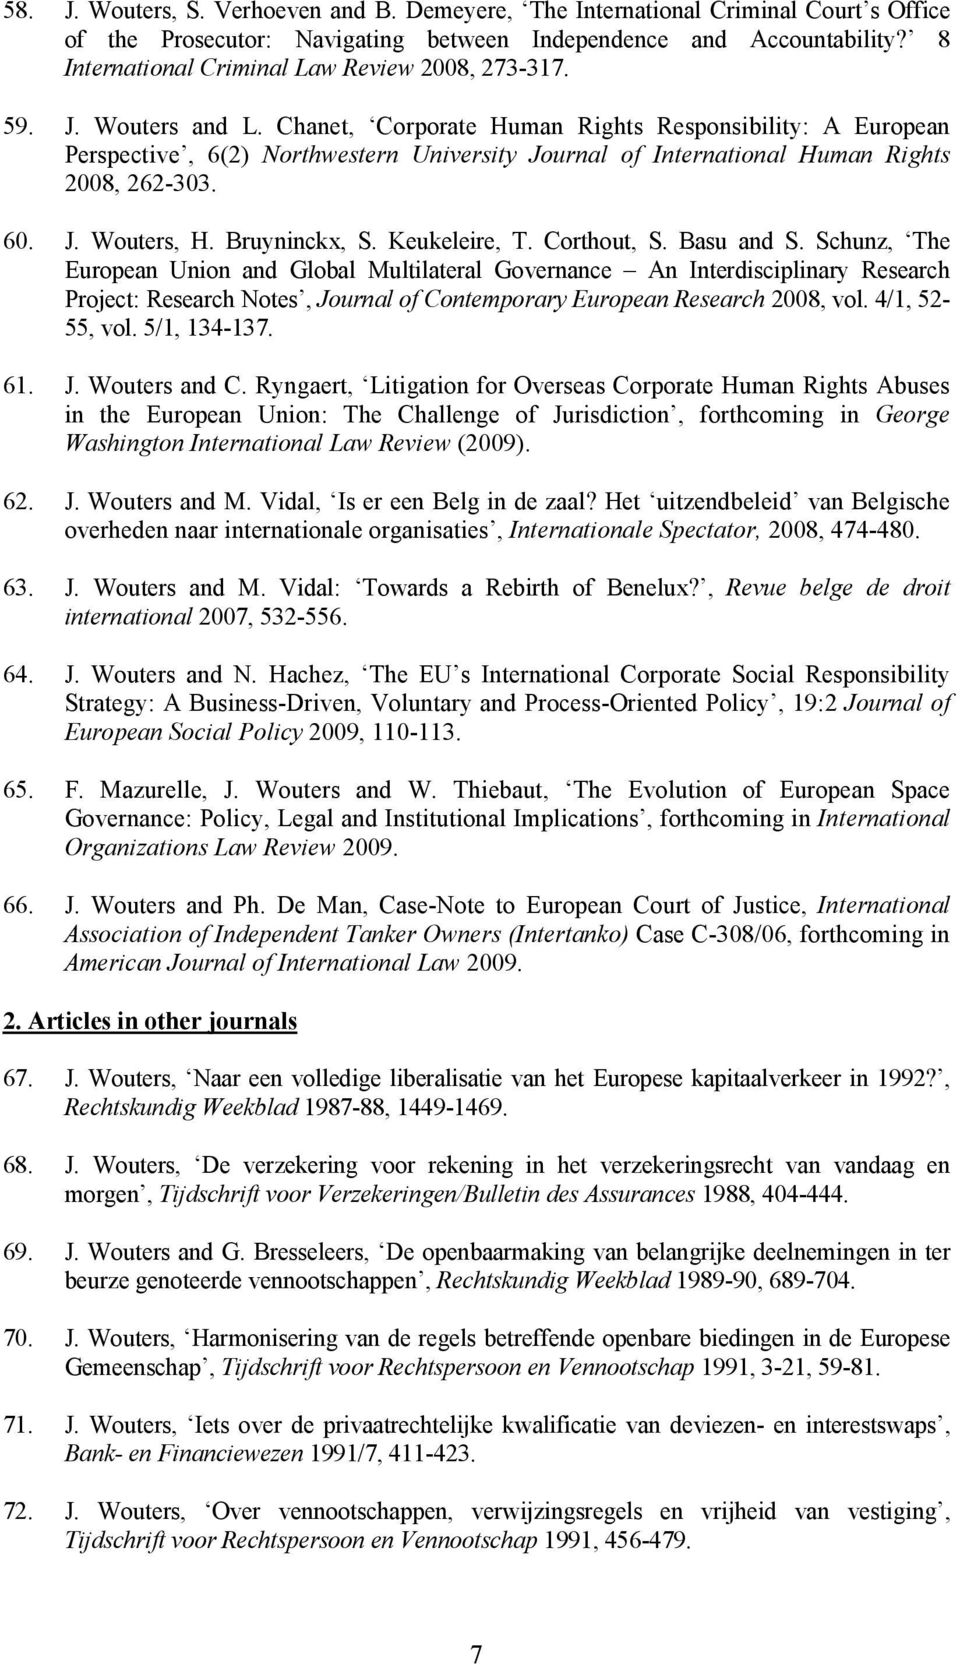 Chanet, Corporate Human Rights Responsibility: A European Perspective, 6(2) Northwestern University Journal of International Human Rights 2008, 262-303. 60. J. Wouters, H. Bruyninckx, S.